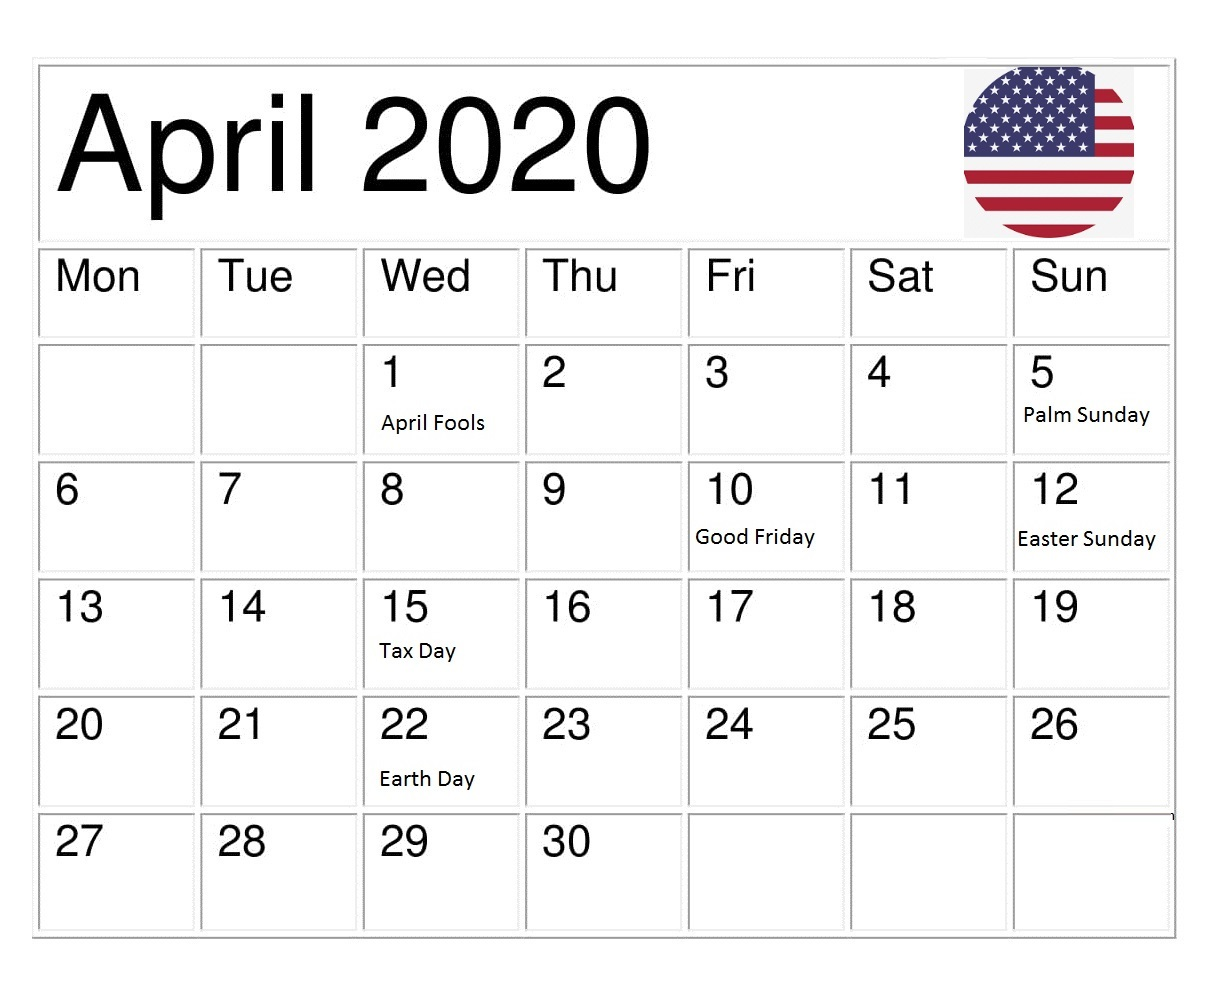 USA April 2020 Holidays Calendar